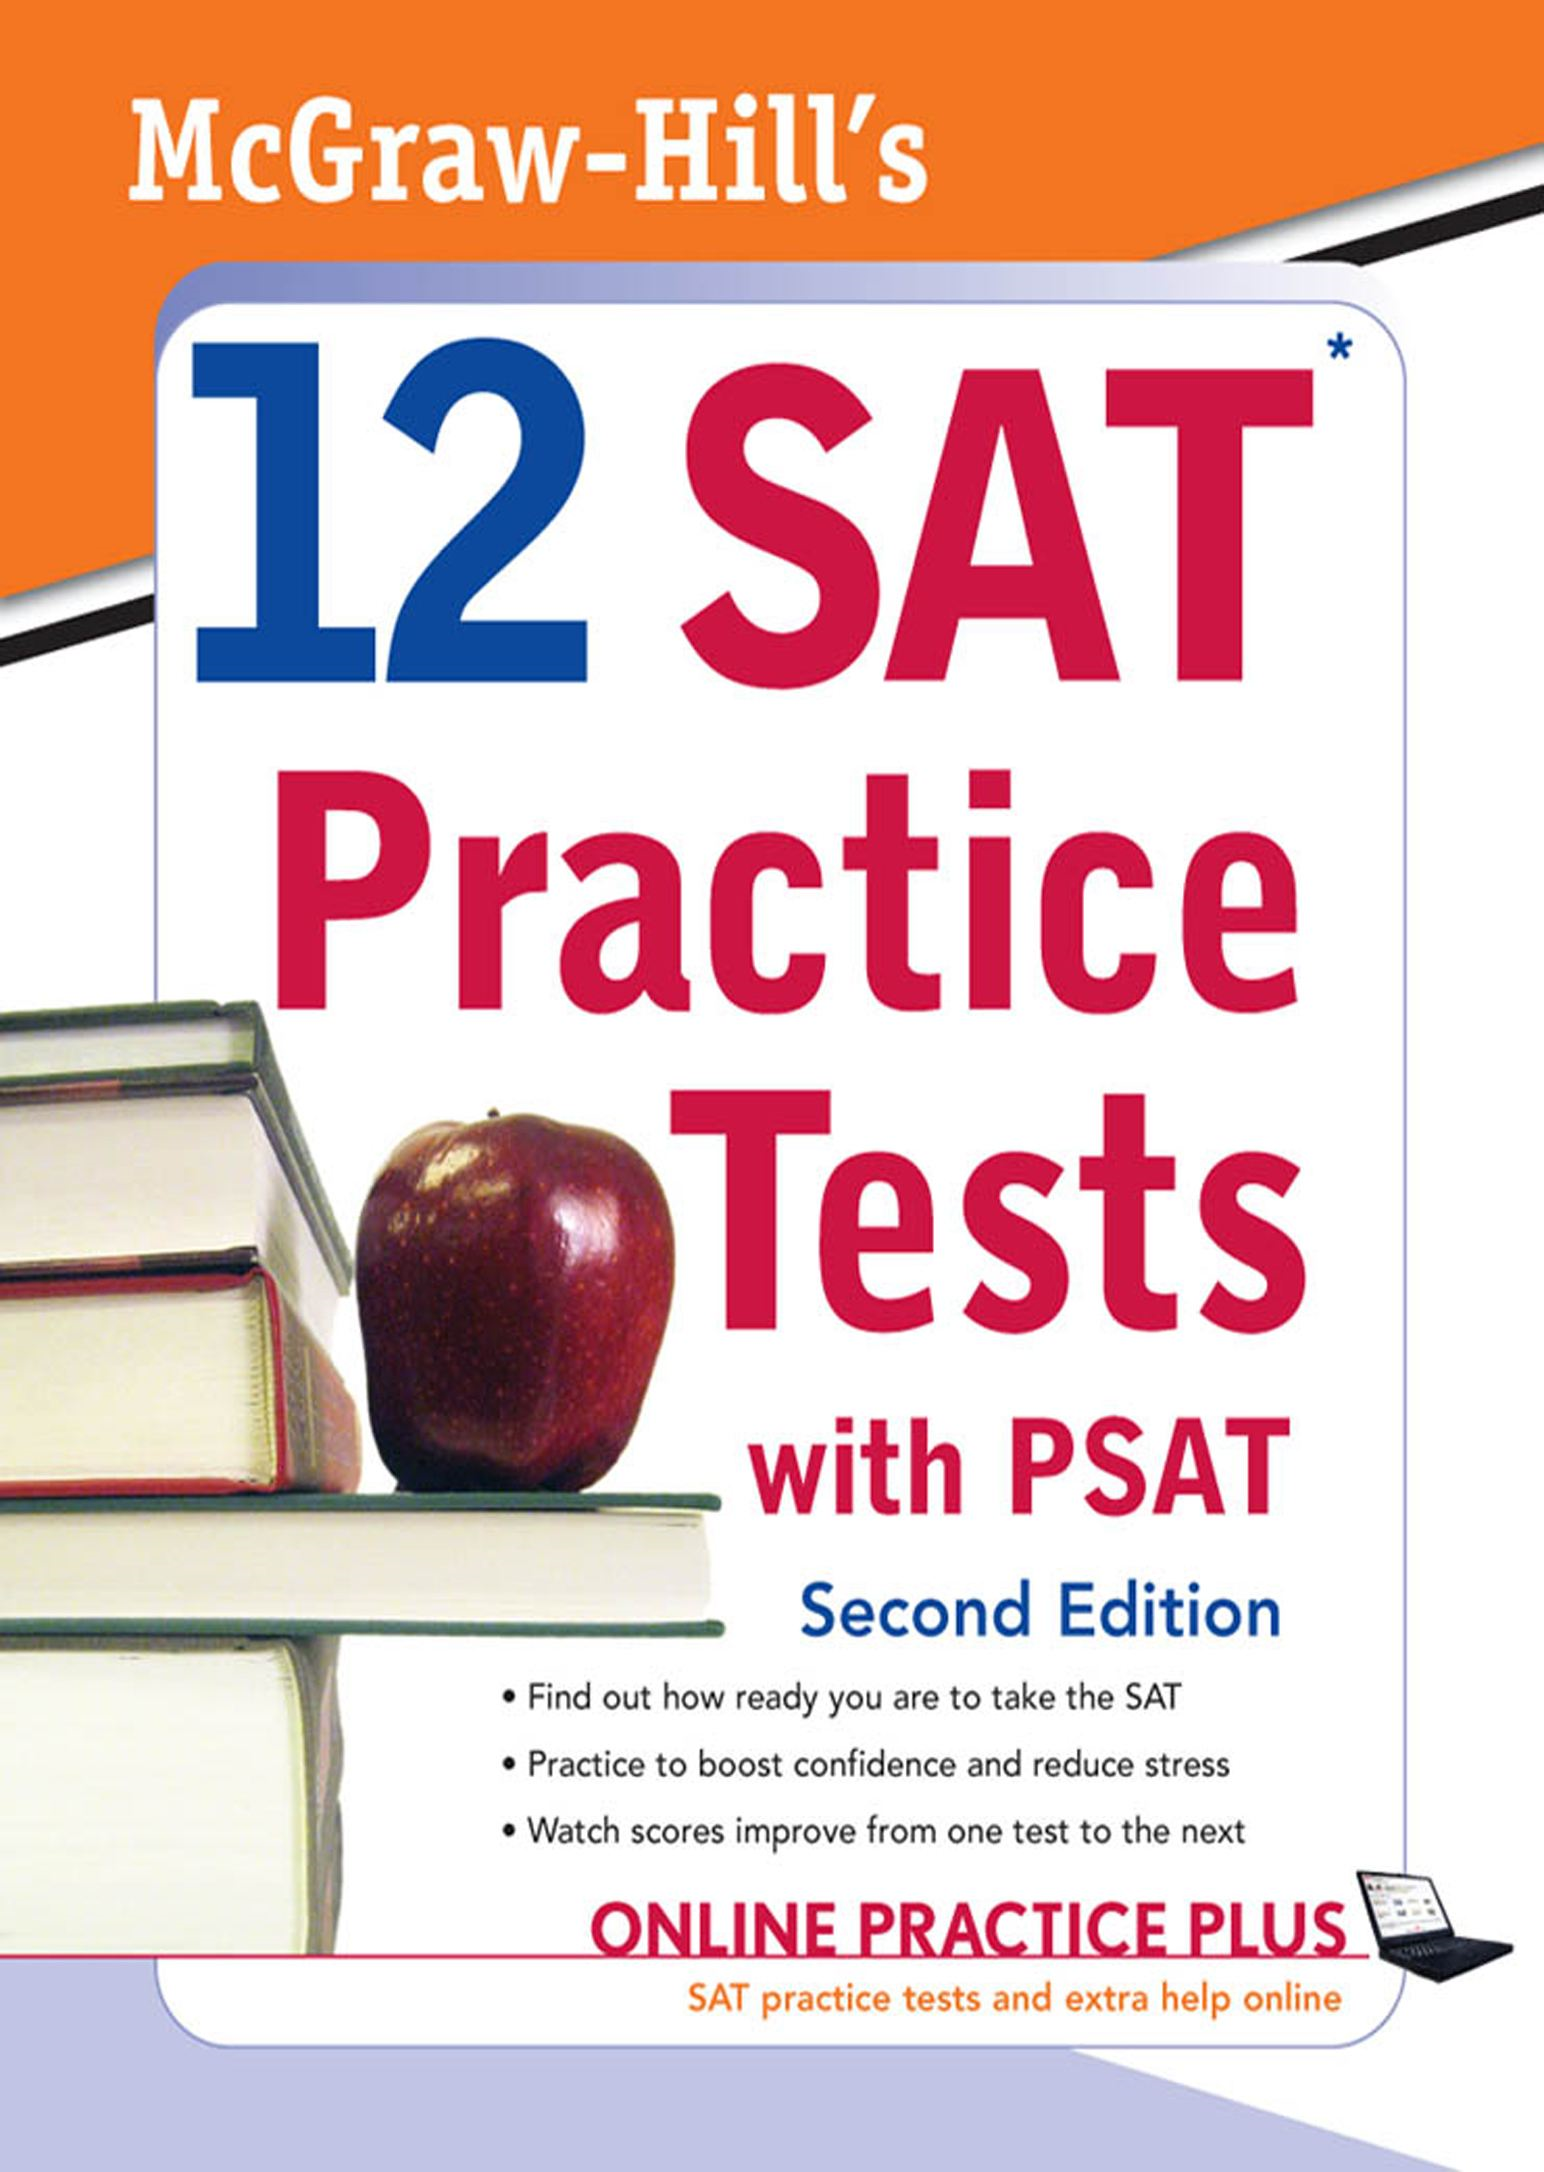 McGraw-Hill's 12 SAT Practice Tests with PSAT 2ed